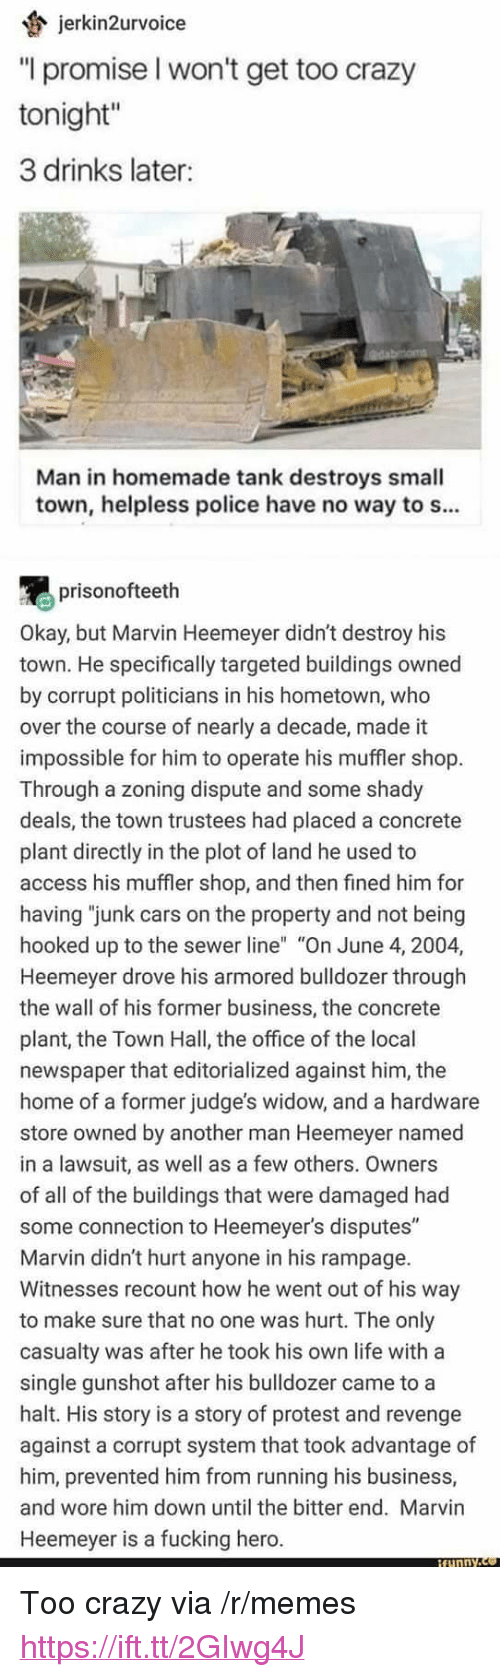 """armored: jerkin2urvoice  """"l promise l won't get too crazy  tonight""""  3 drinks later:  Man in homemade tank destroys small  town, helpless police have no way to s...  prisonofteeth  Okay, but Marvin Heemeyer didn't destroy his  town. He specifically targeted buildings owned  by corrupt politicians in his hometown, who  over the course of nearly a decade, made it  impossible for him to operate his muffler shop  Through a zoning dispute and some shady  deals, the town trustees had placed a concrete  plant directly in the plot of land he used to  access his muffler shop, and then fined him for  having """"junk cars on the property and not being  hooked up to the sewer line"""" """"On June 4, 2004,  Heemeyer drove his armored bulldozer through  the wall of his former business, the concrete  plant, the Town Hall, the office of the local  newspaper that editorialized against him, the  home of a former judge's widow, and a hardware  store owned by another man Heemeyer named  in a lawsuit, as well as a few others. Owners  of all of the buildings that were damaged had  some connection to Heemeyer's disputes""""  Marvin didn't hurt anyone in his rampage.  Witnesses recount how he went out of his way  to make sure that no one was hurt. The only  casualty was after he took his own life with a  single gunshot after his bulldozer came to a  halt. His story is a story of protest and revenge  against a corrupt system that took advantage of  him, prevented him from running his business,  and wore him down until the bitter end. Marvin  Heemeyer is a fucking hero. <p>Too crazy via /r/memes <a href=""""https://ift.tt/2GIwg4J"""">https://ift.tt/2GIwg4J</a></p>"""